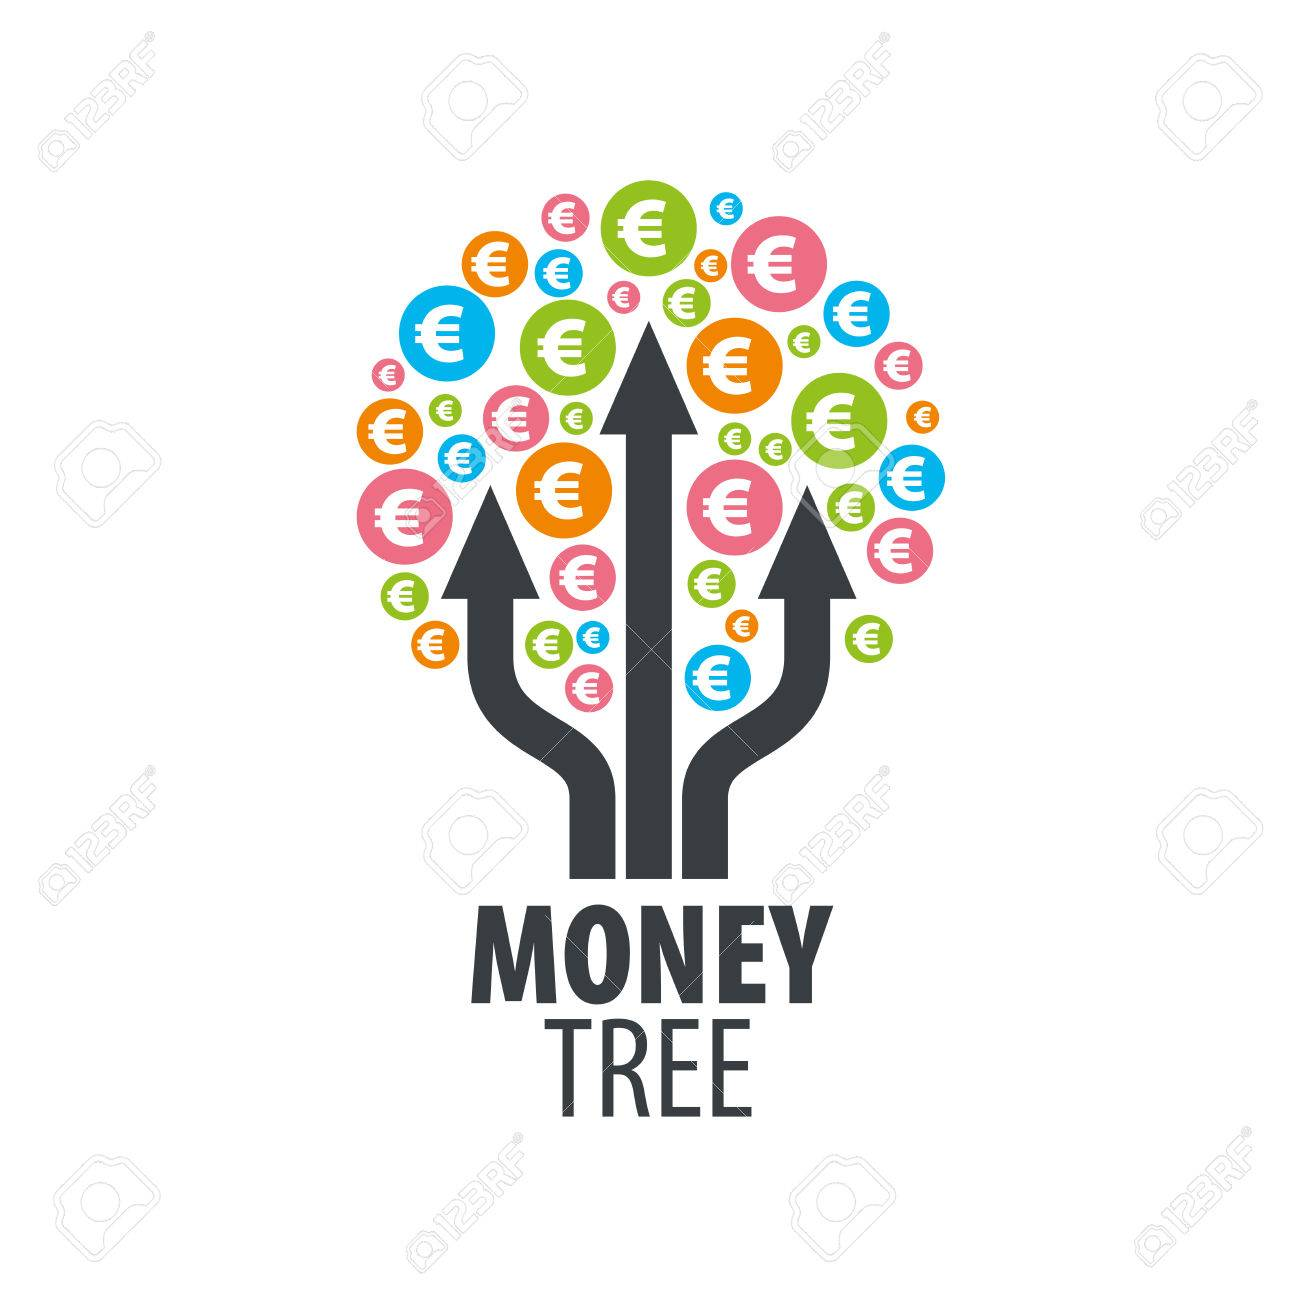 design templates vectors vector artwork wwwresume formatcom 62048743 logo design template money tree vector illustration stock - Wwwresume Formatcom